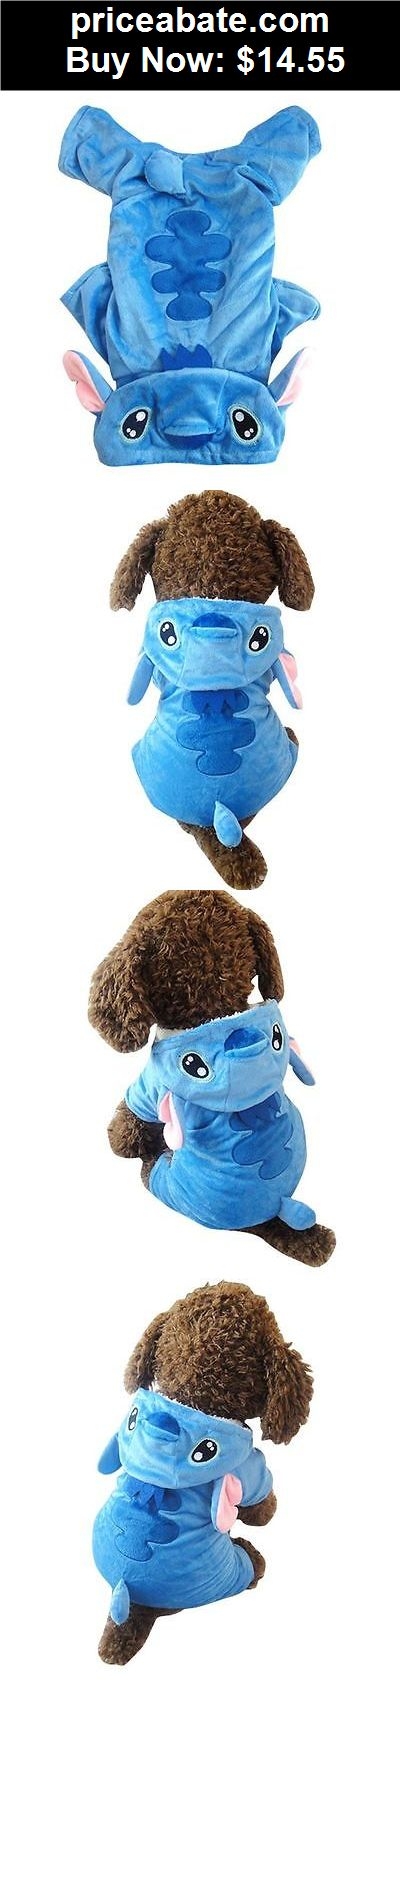 Animals-Dog: Stitch Costume Fleece Coat Jacket Hoodie Pet Cat Puppy Small Dog Clothes Blue - BUY IT NOW ONLY $14.55